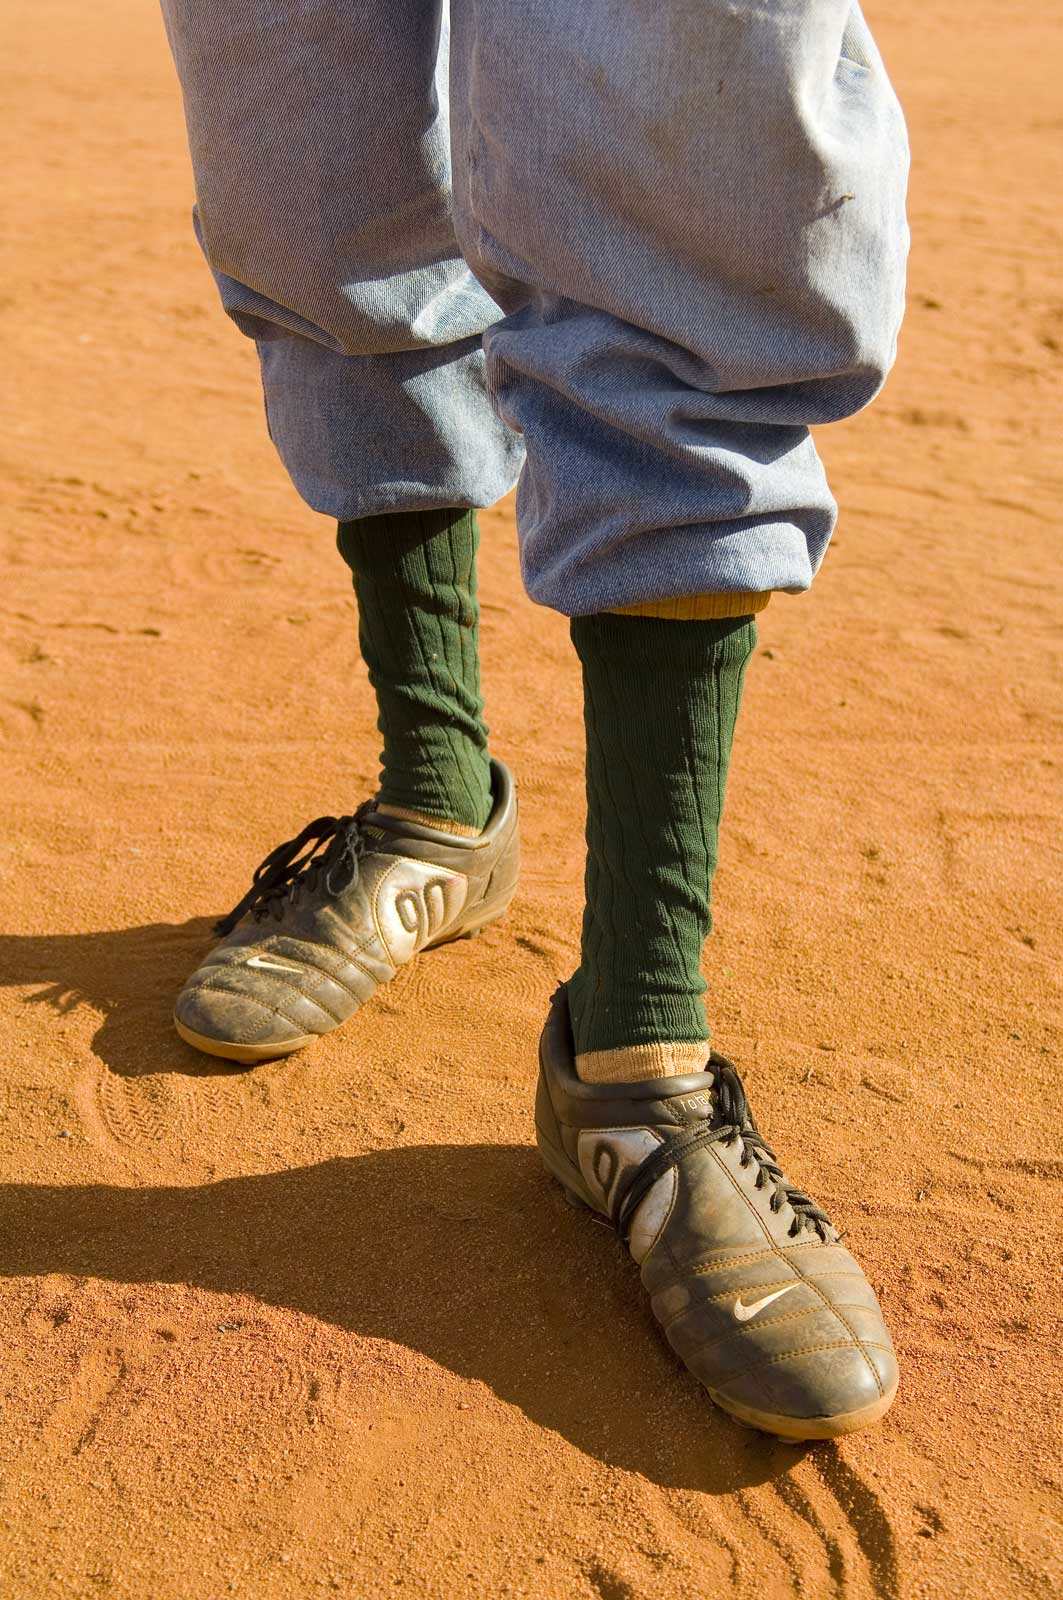 image of AARONTAIT-COPYRIGHTED-2014-5332 EDITORIAL DOCUMENTARY PHOTOGRAPHER PAPUNYA NORTHERN TERRITORY AUSTRALIA LANDSCAPE LIFE PEOPLE ART INDIGENOUS PINTUPI LURITJA PAPUNYA TULA FOOTY BOOTS AUSTRALIA OUTBACK